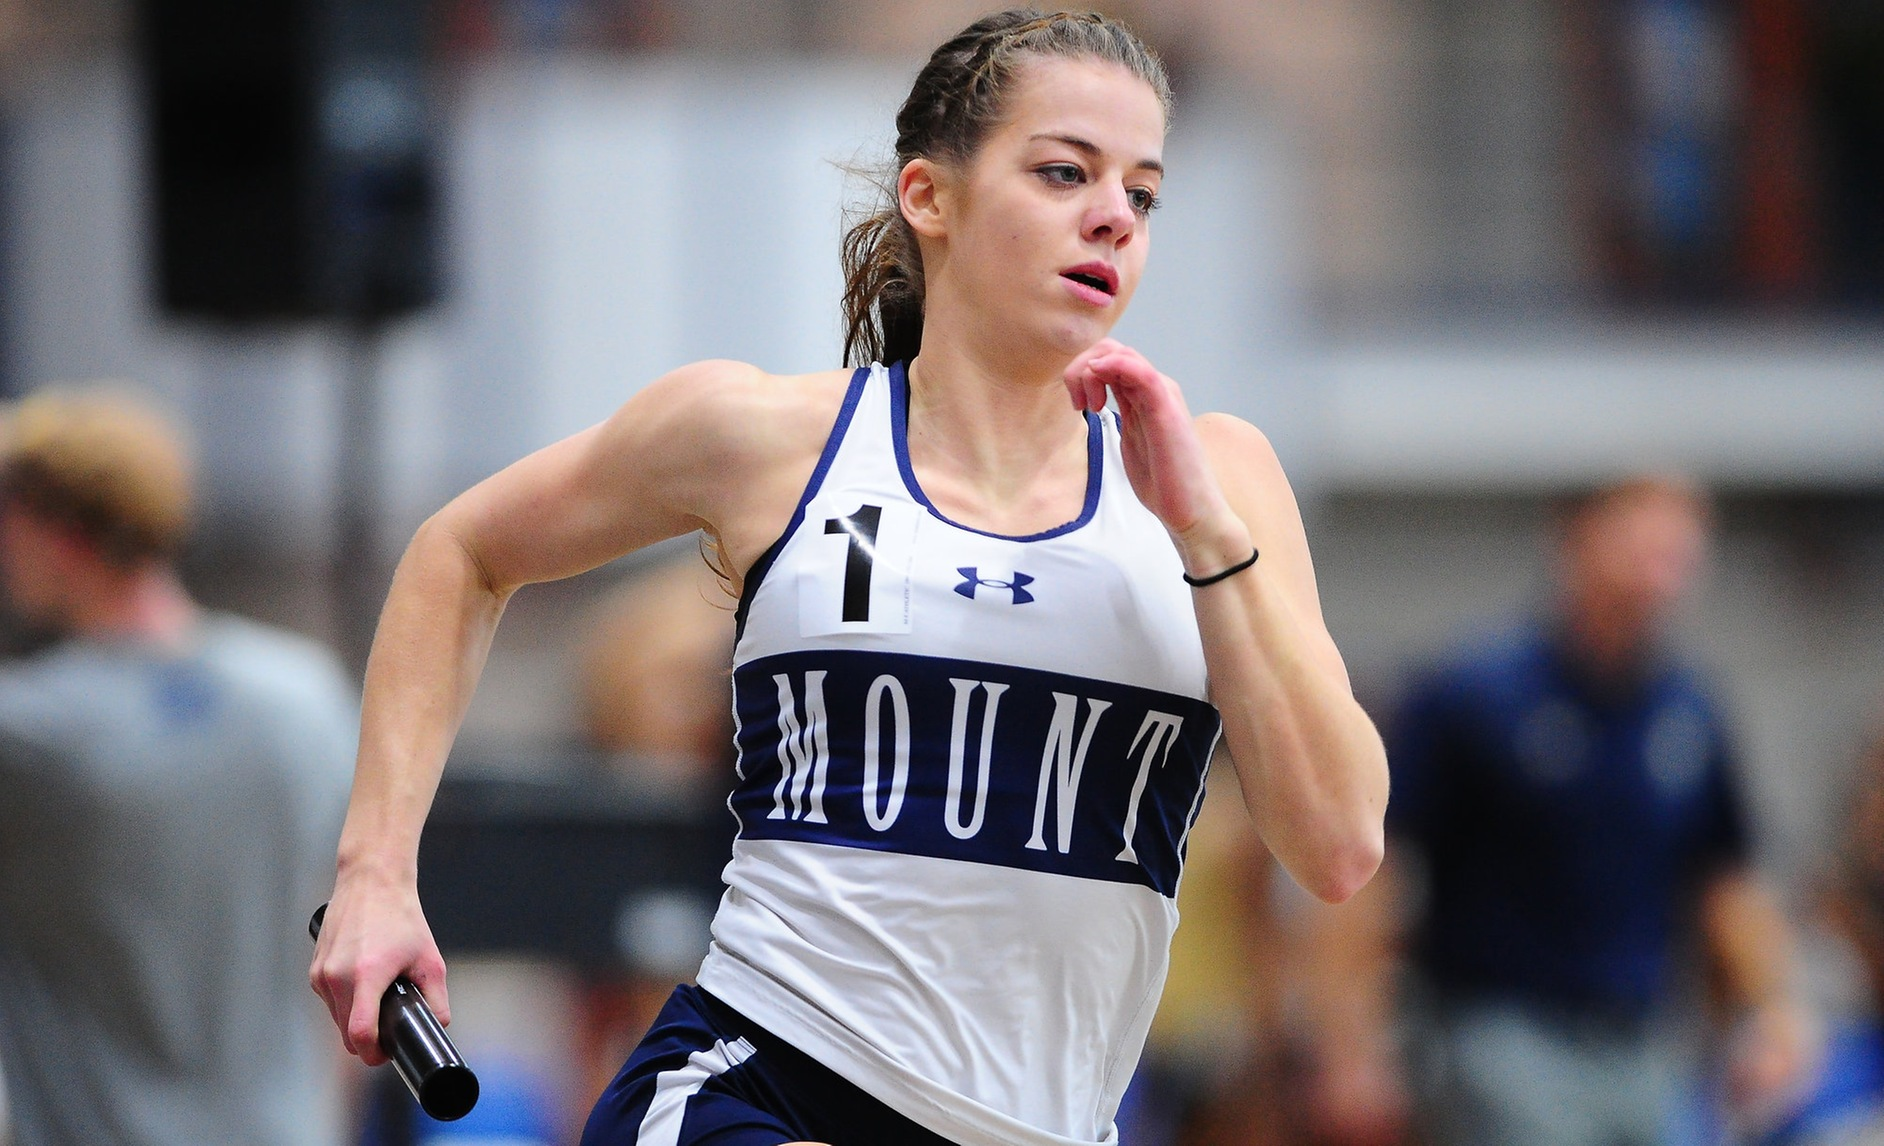 Mount Indoor Track Heads to Akron Invitational; Also Will Compete at Susquehanna University Challenge